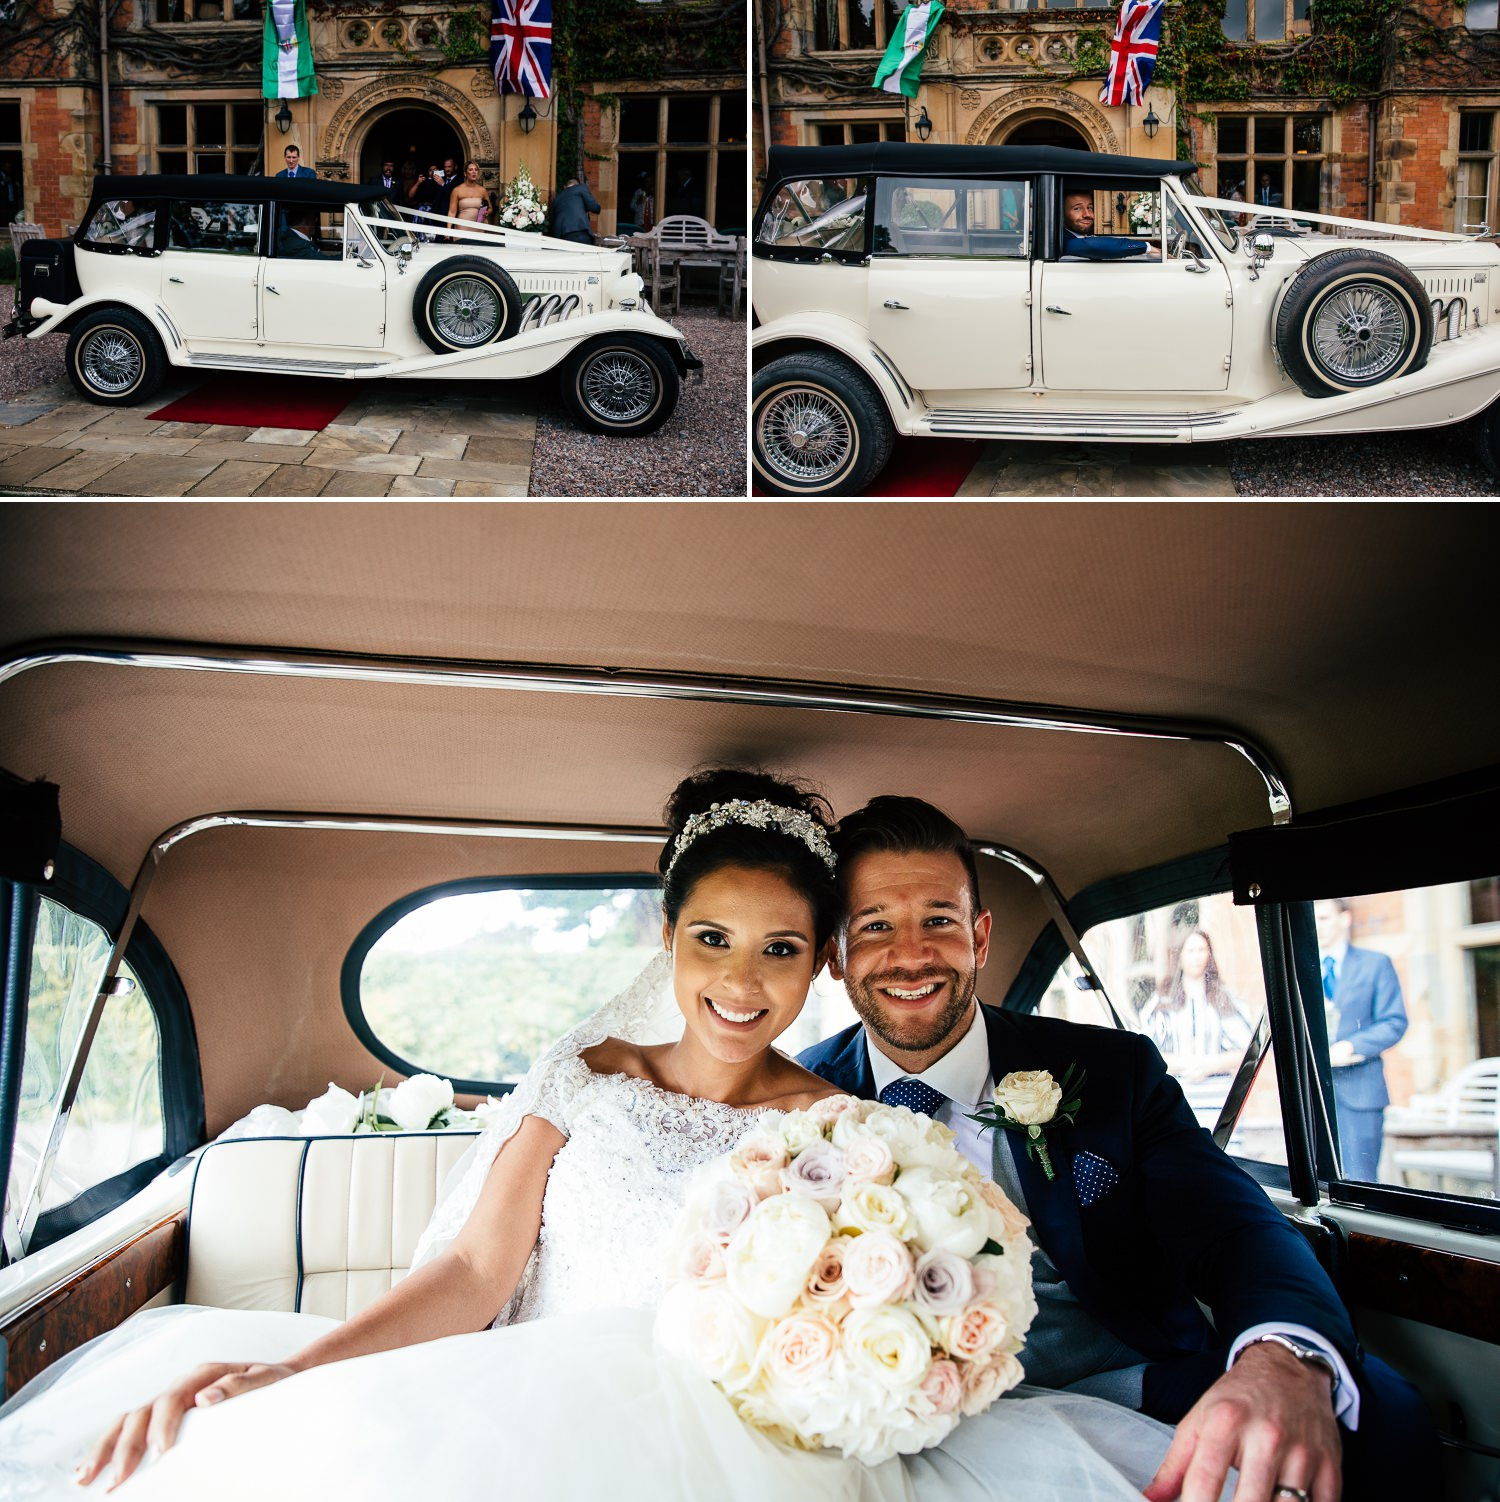 Wedding photography of couple in wedding car at Soughton Hall, Chester, Cheshire